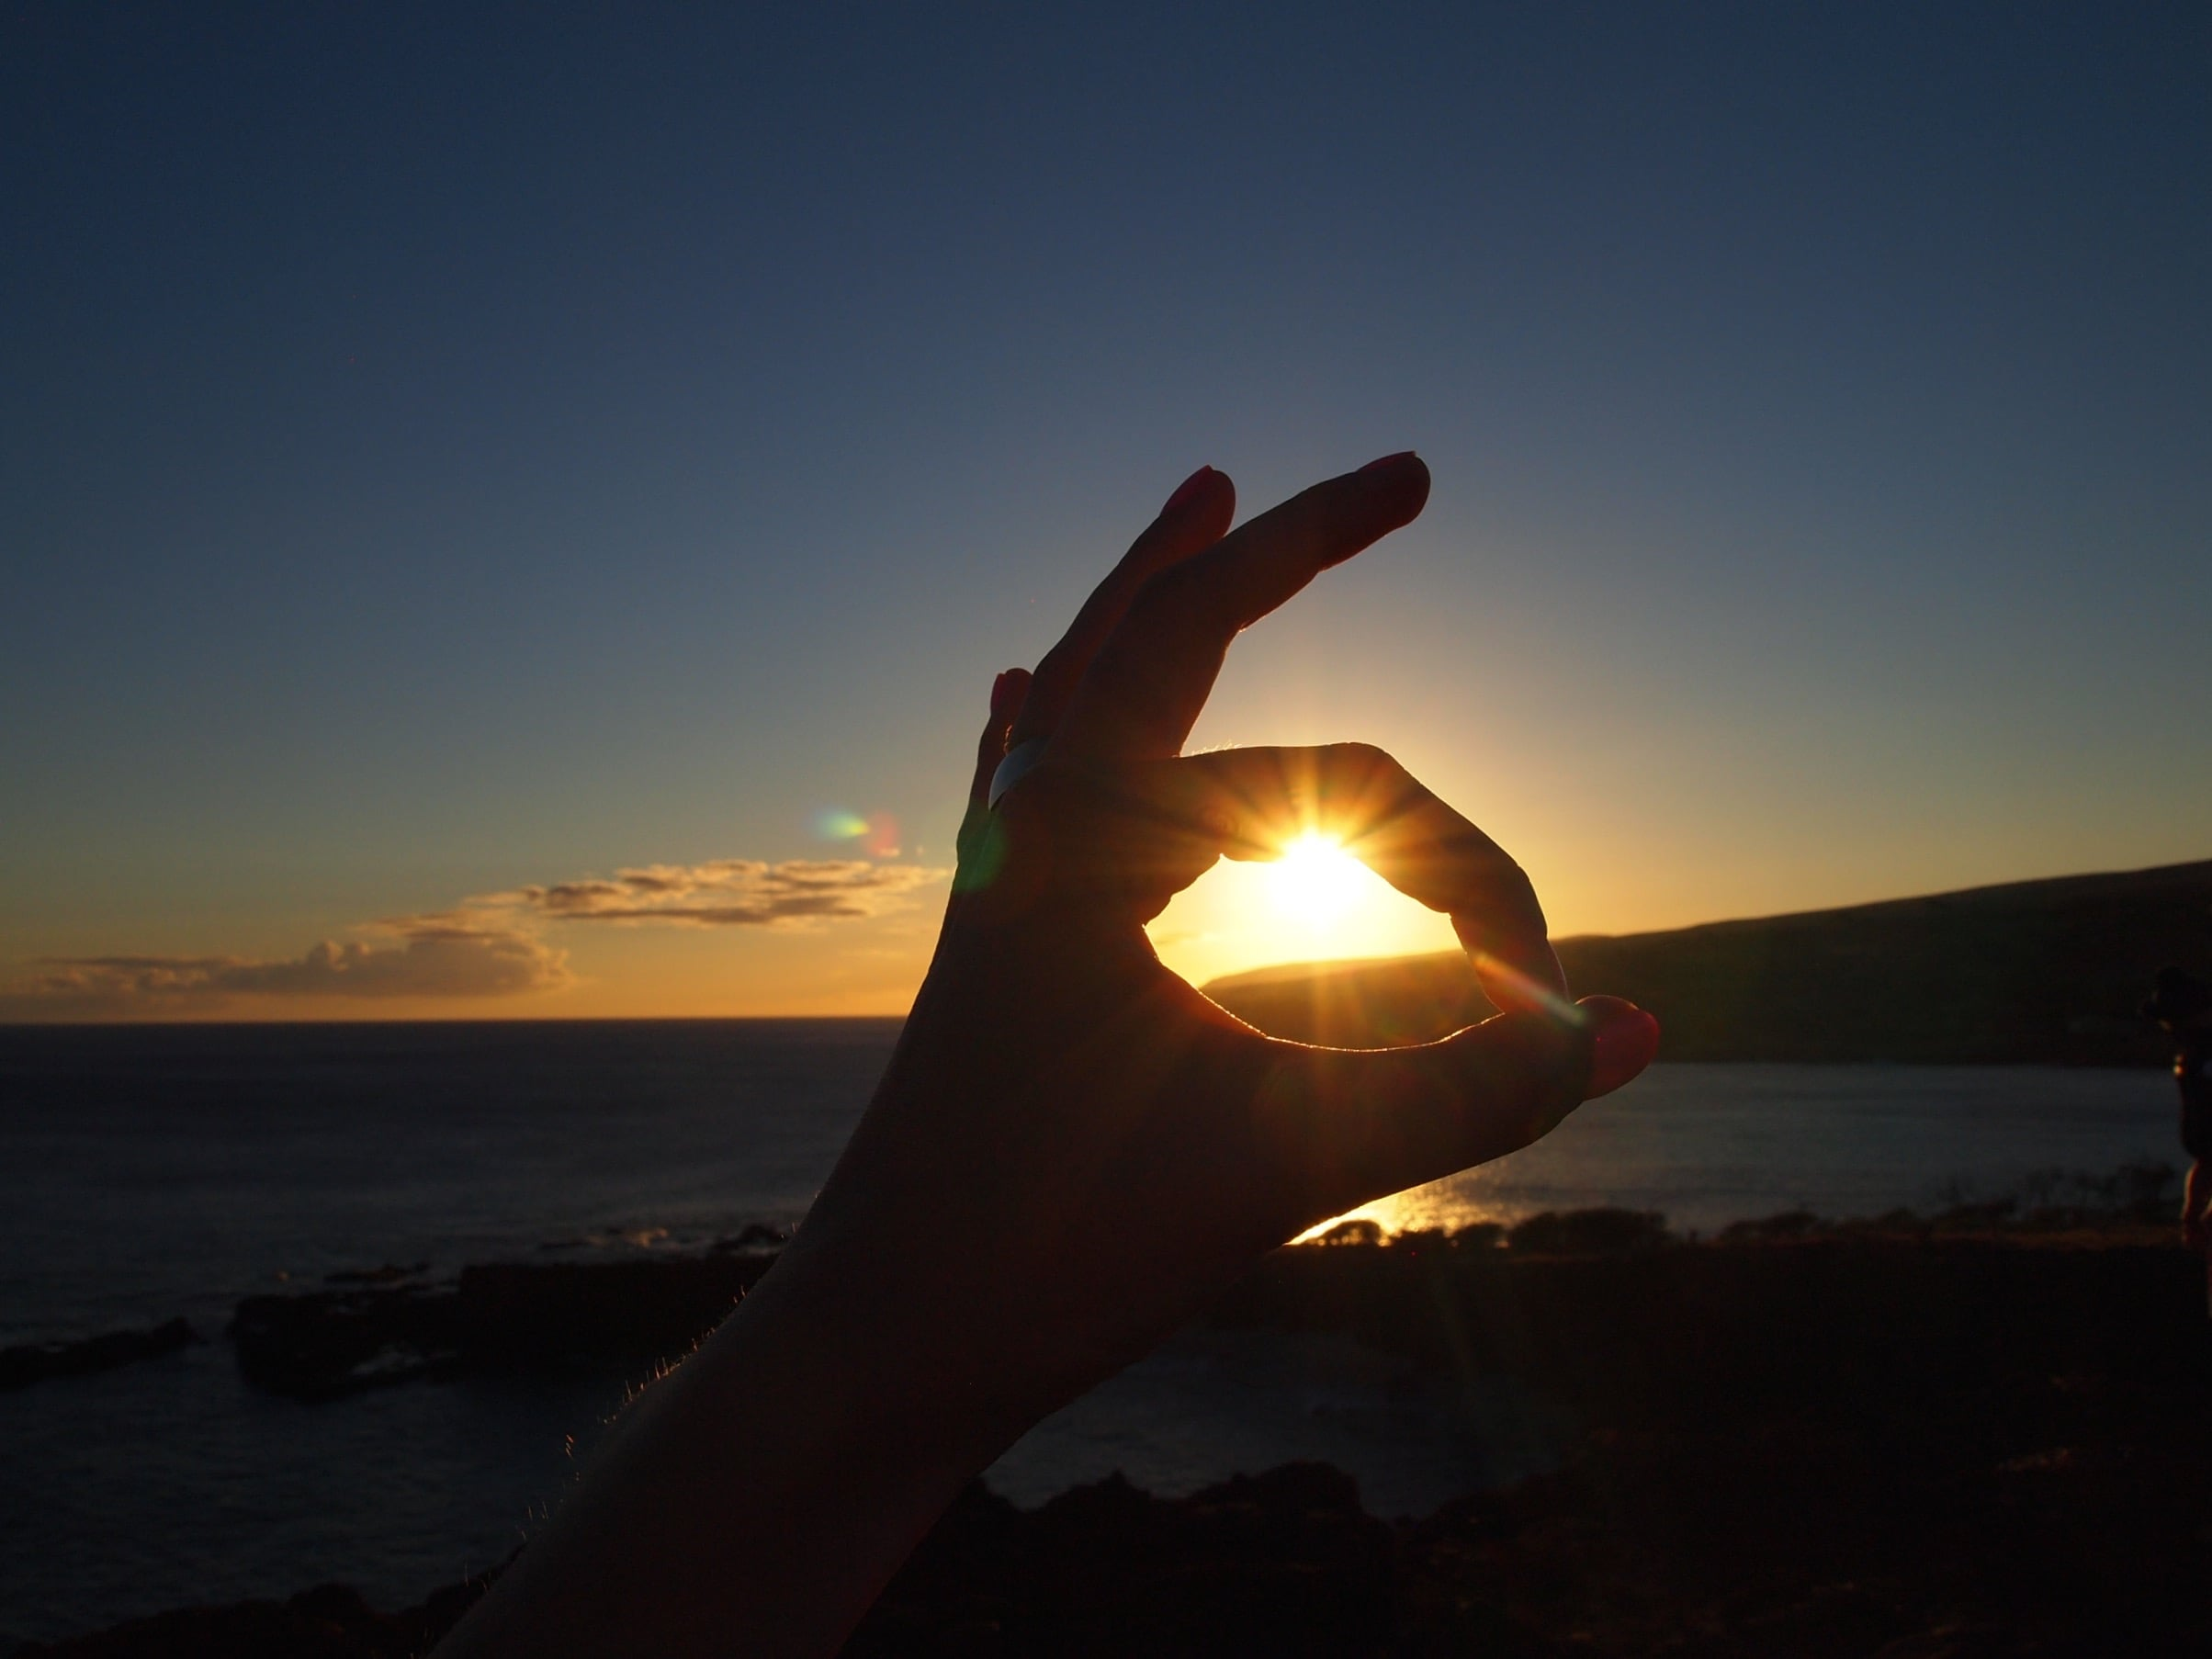 Lanai: The sunset from Sweetheart Rock.